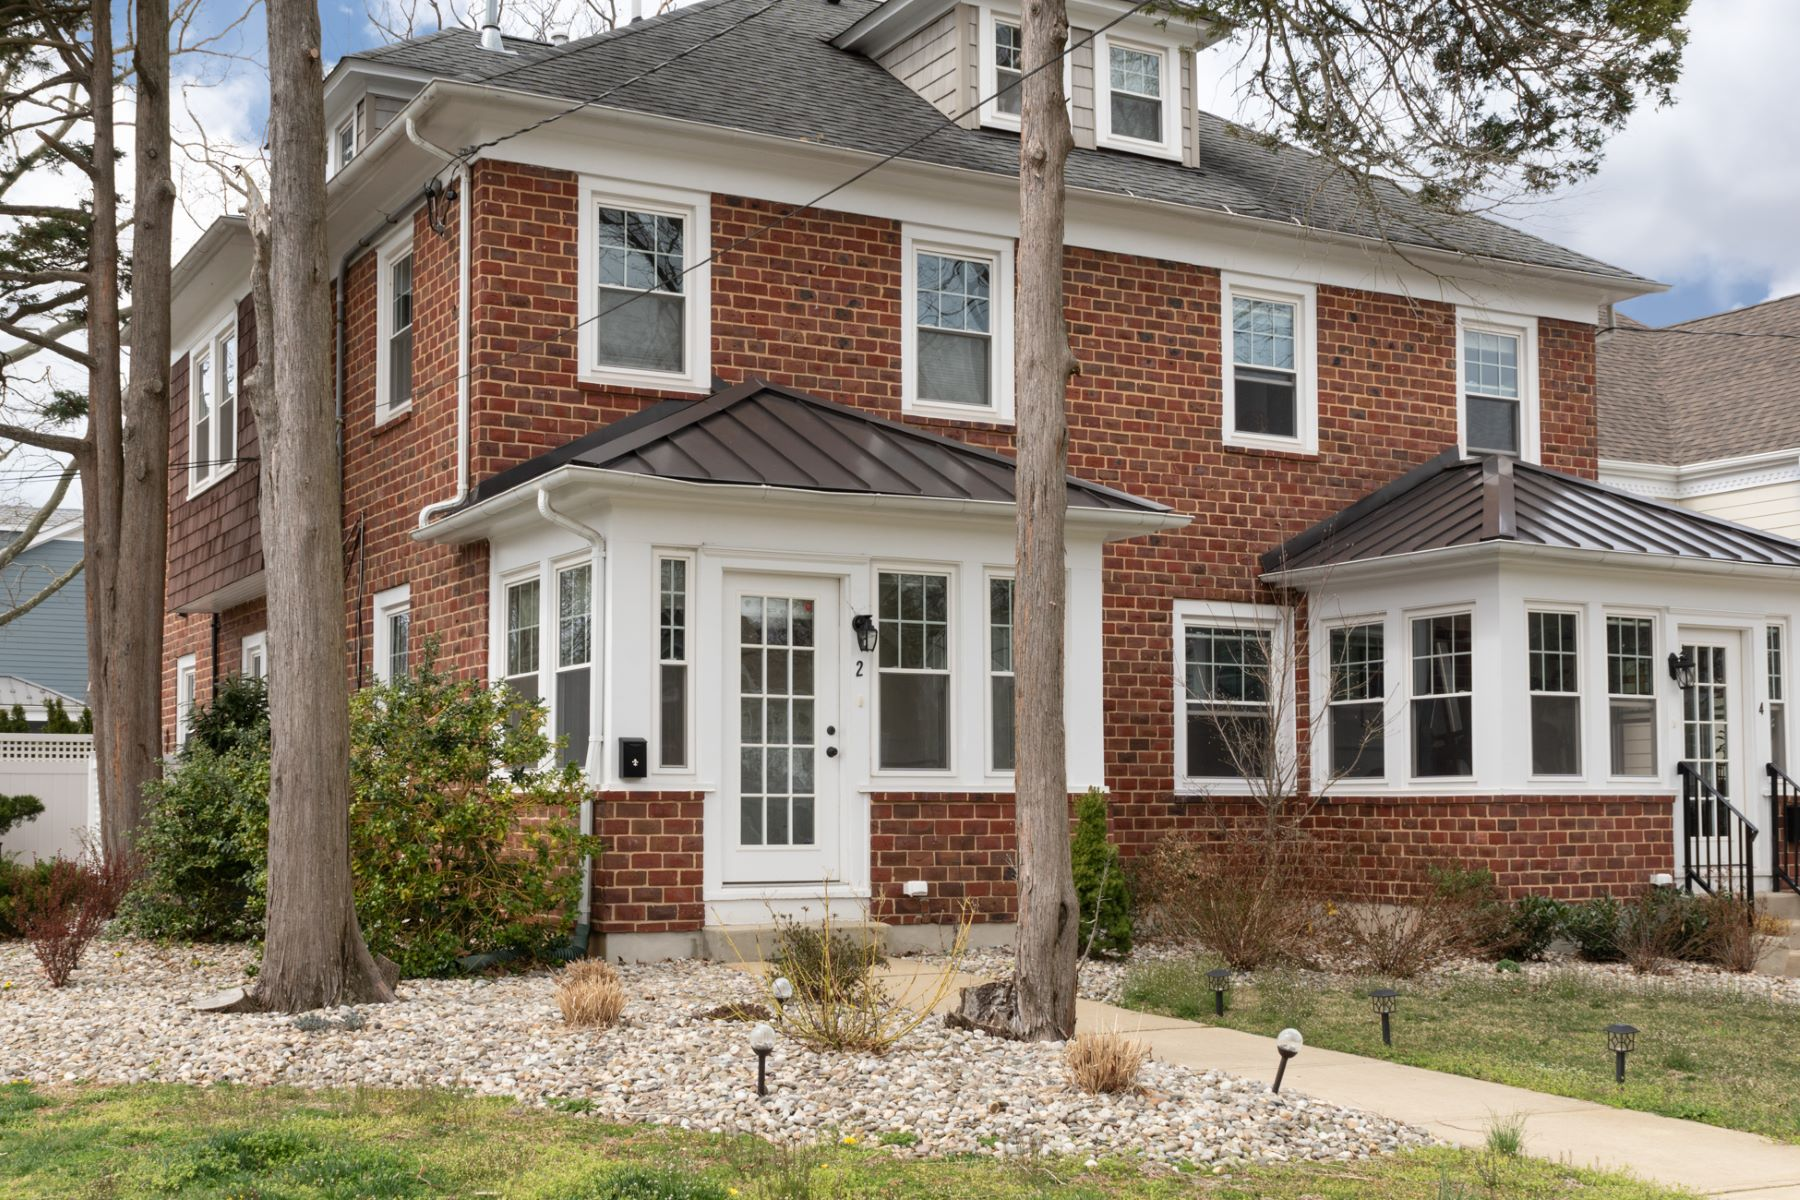 Renovated In-Town Beauty Pairs Luxury with Charm 2 Harris Road, Princeton, New Jersey 08540 Hoa Kỳ